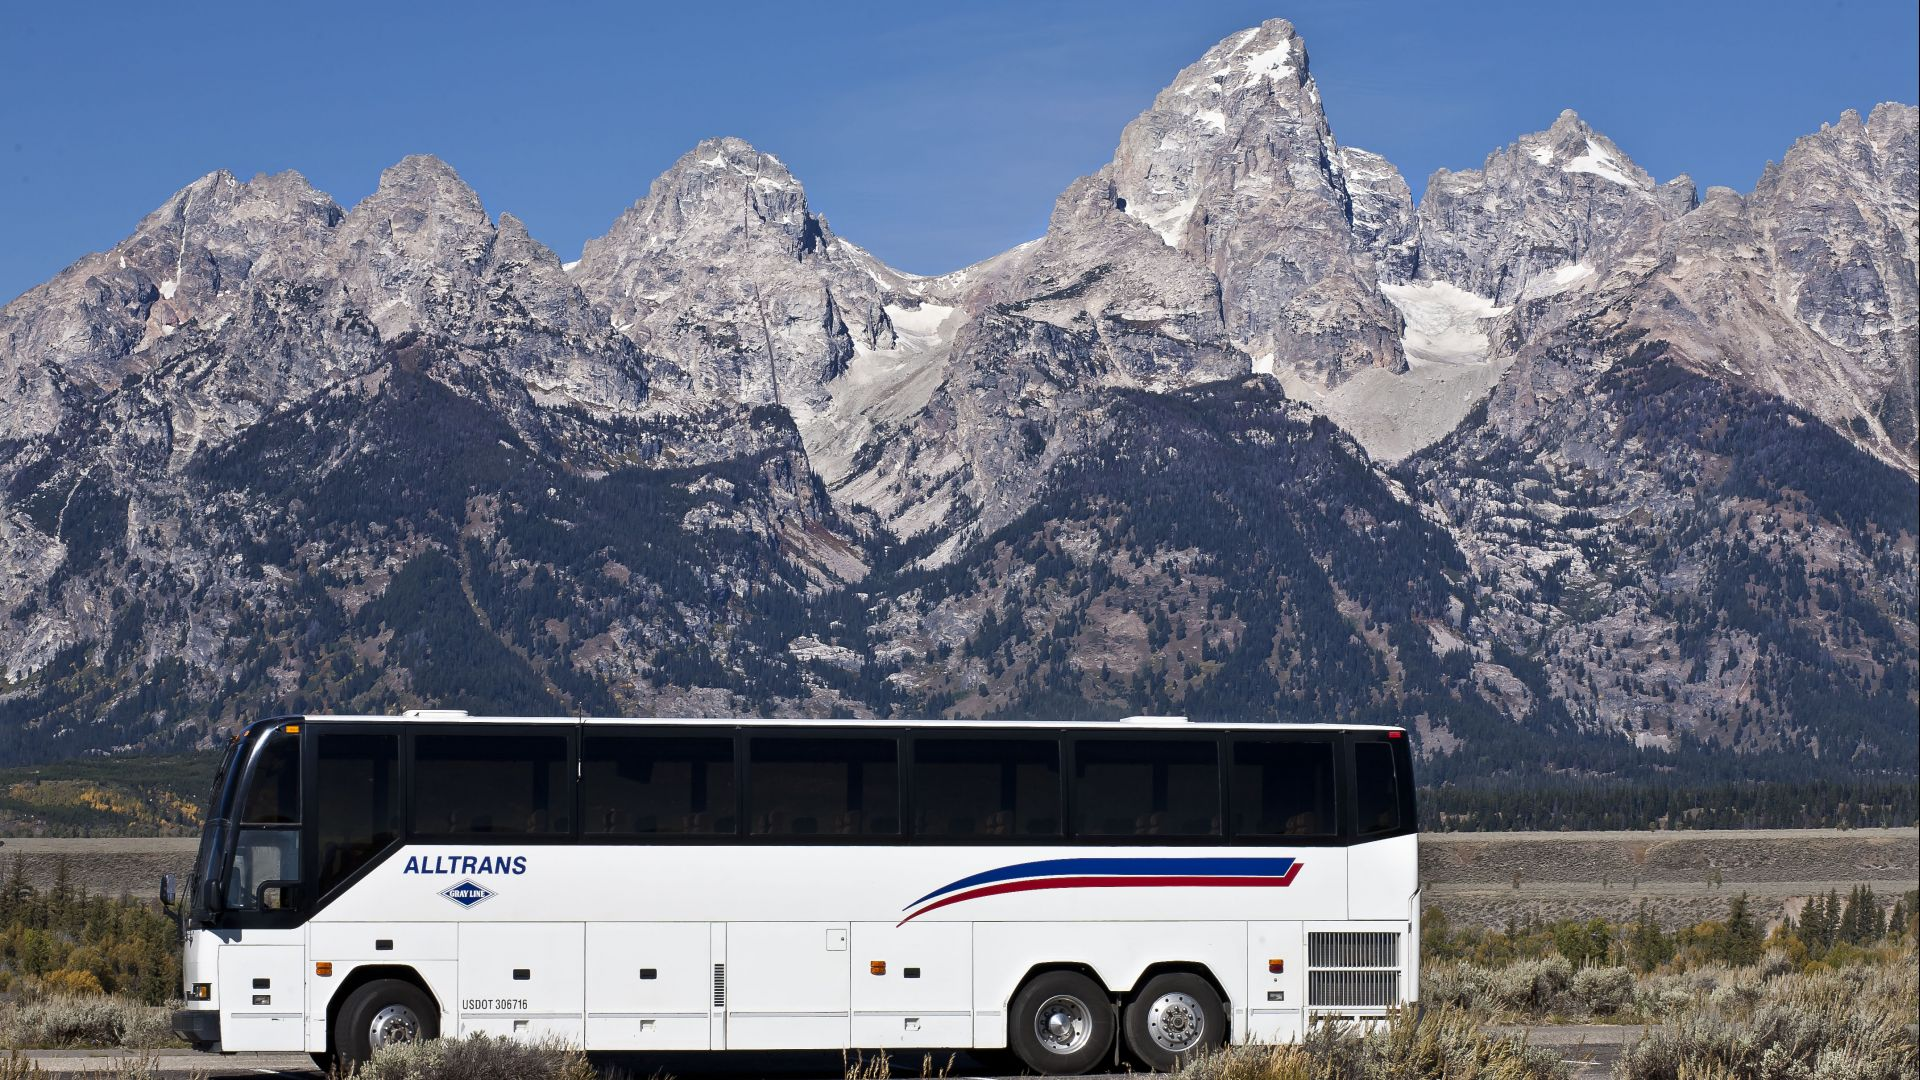 Catch an airport shuttle or join the Targhee Express with AllTrans. The local START Bus also offers affordable local transportation.